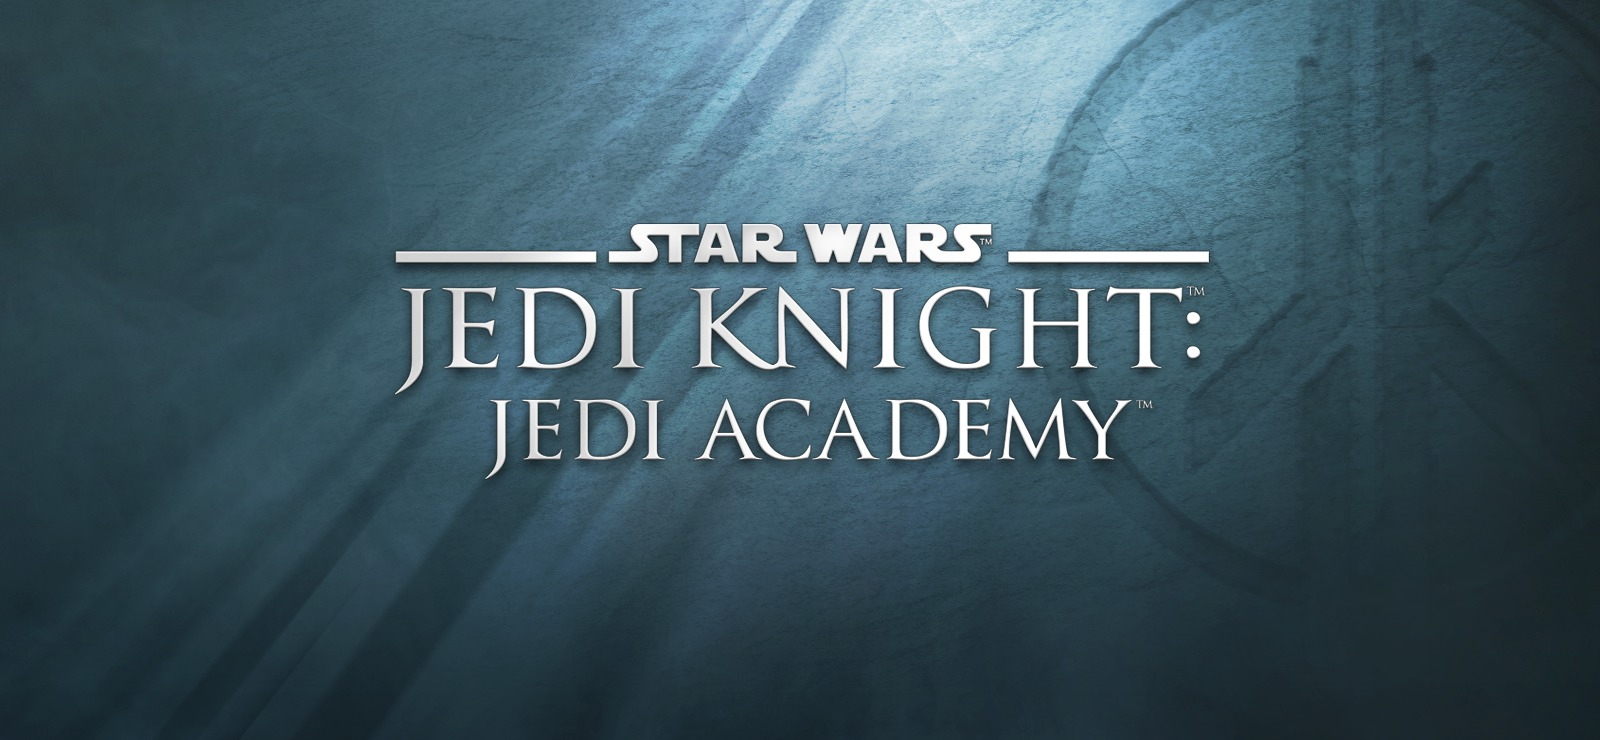 Star Wars Jedi Knight : Jedi Academy [PC Code - Steam]